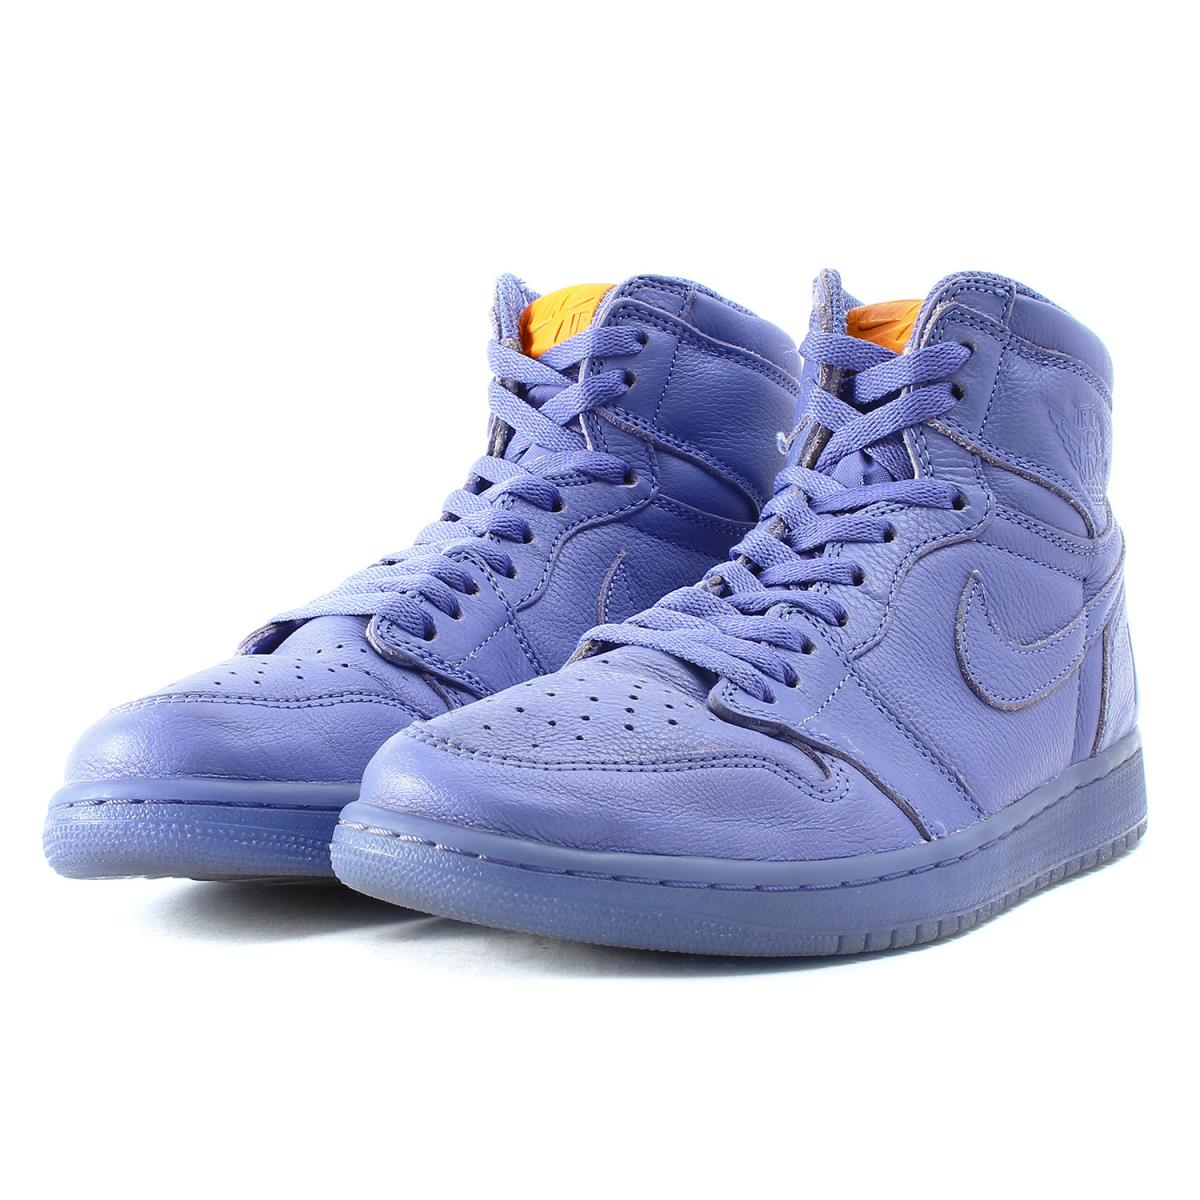 san francisco f0fcc c8ddb NIKE (Nike) AIR JORDAN 1 RETRO HIGH OG G8RD GATORADE GRAPE (AJ5997-555)  rush violet US9(27cm)